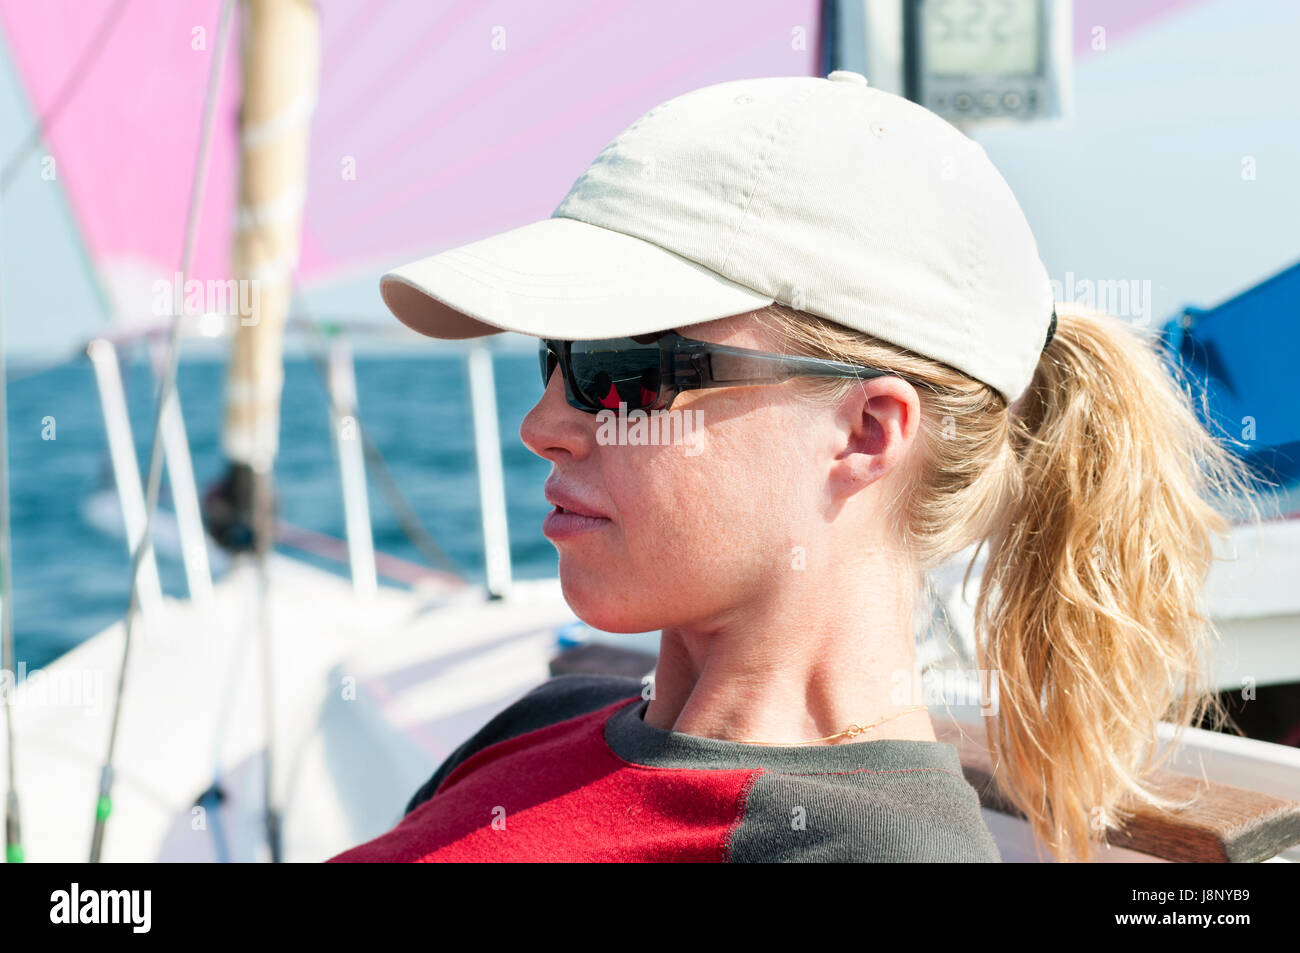 Woman wearing cap and sunglasses Stock Photo